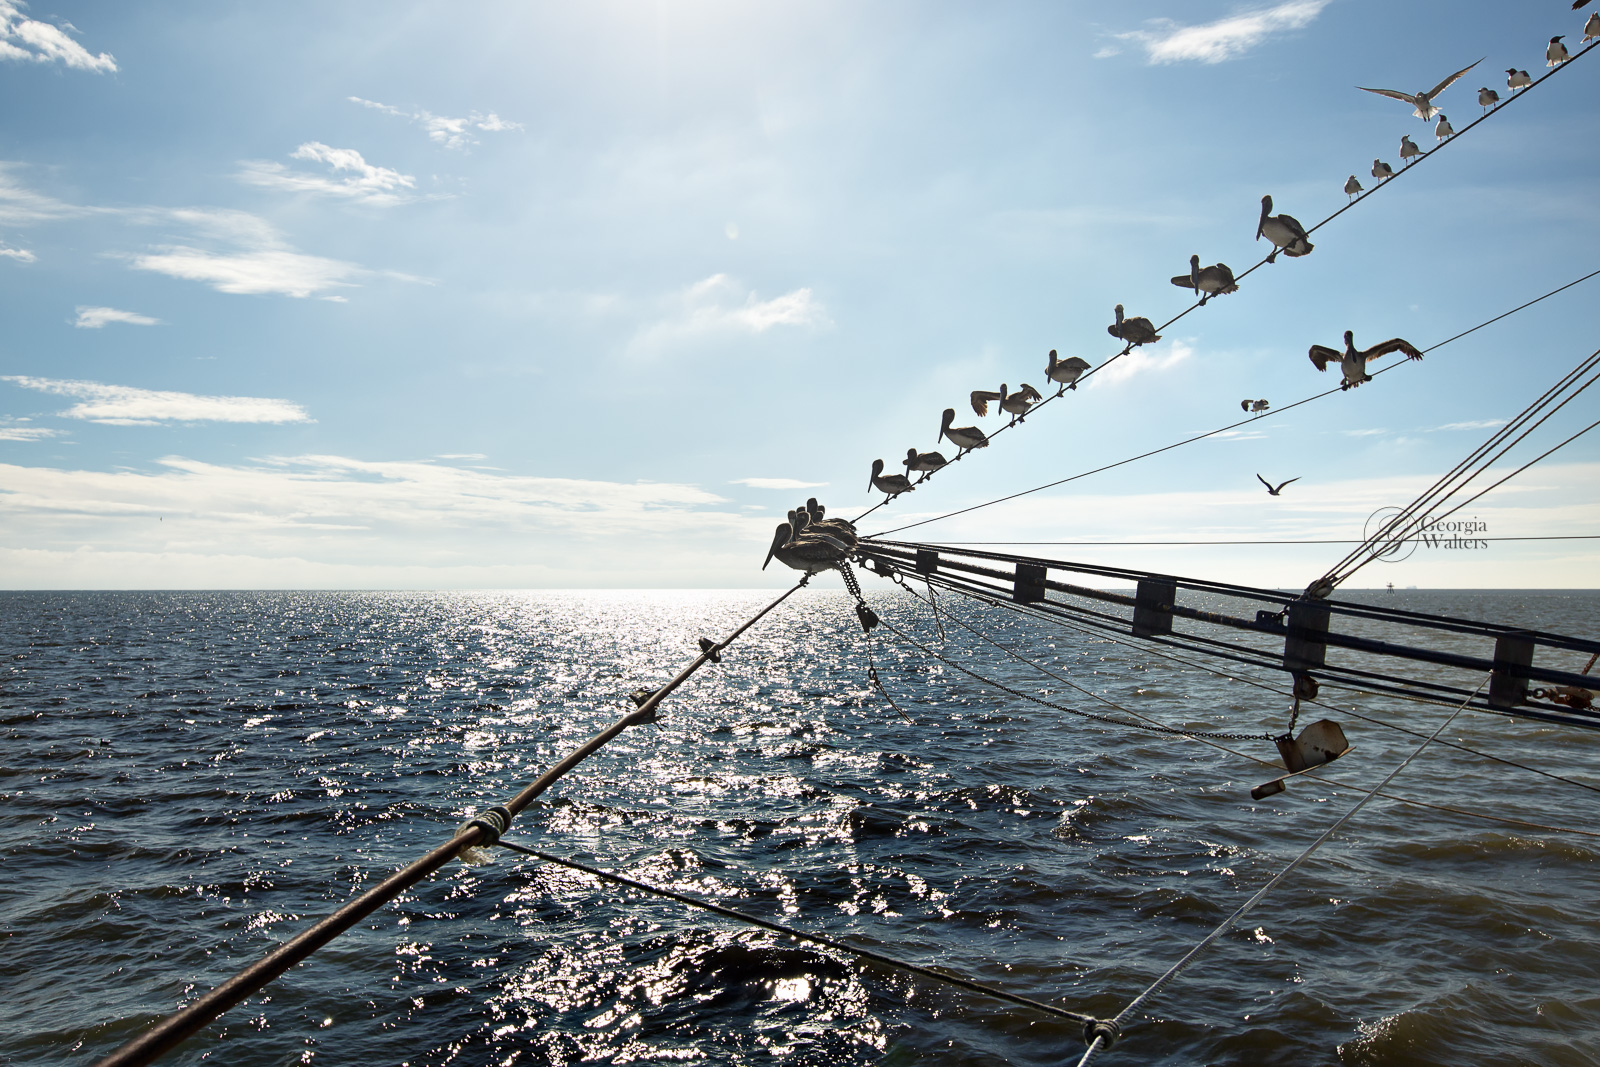 Birds rest on the guide wires of a shrimp boat while waiting for the harvest to be brought in.